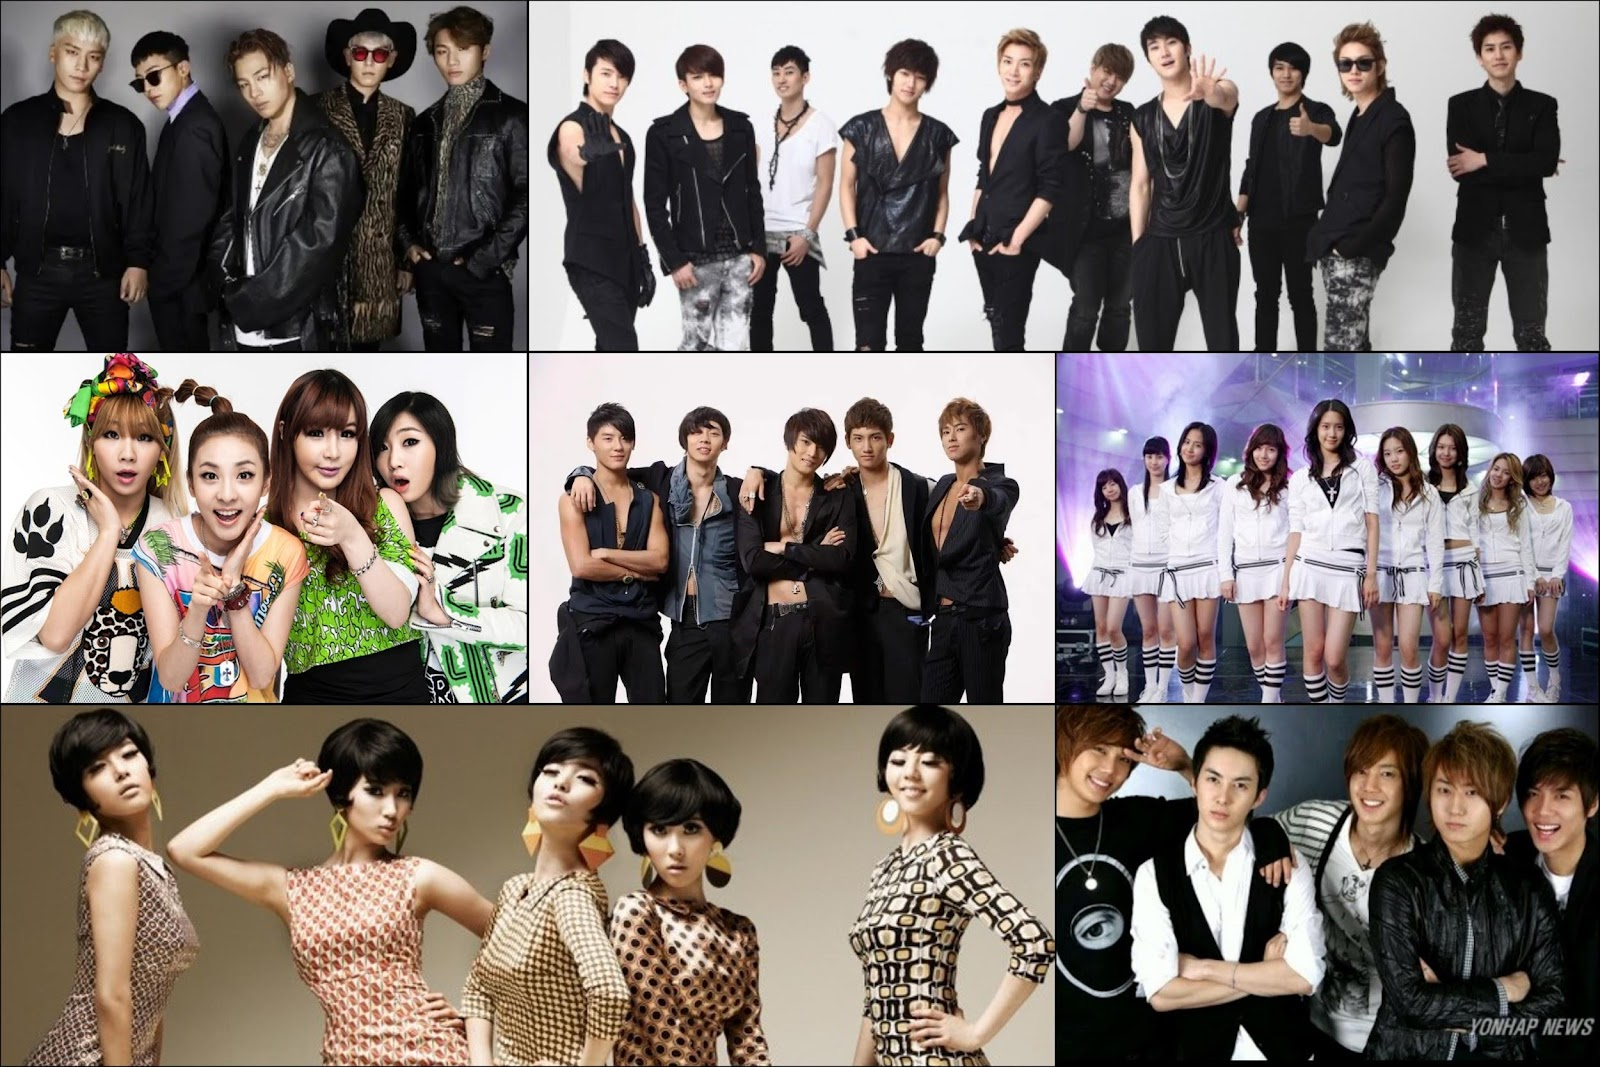 GENERATIONS OF KPOP : News : KpopStarz